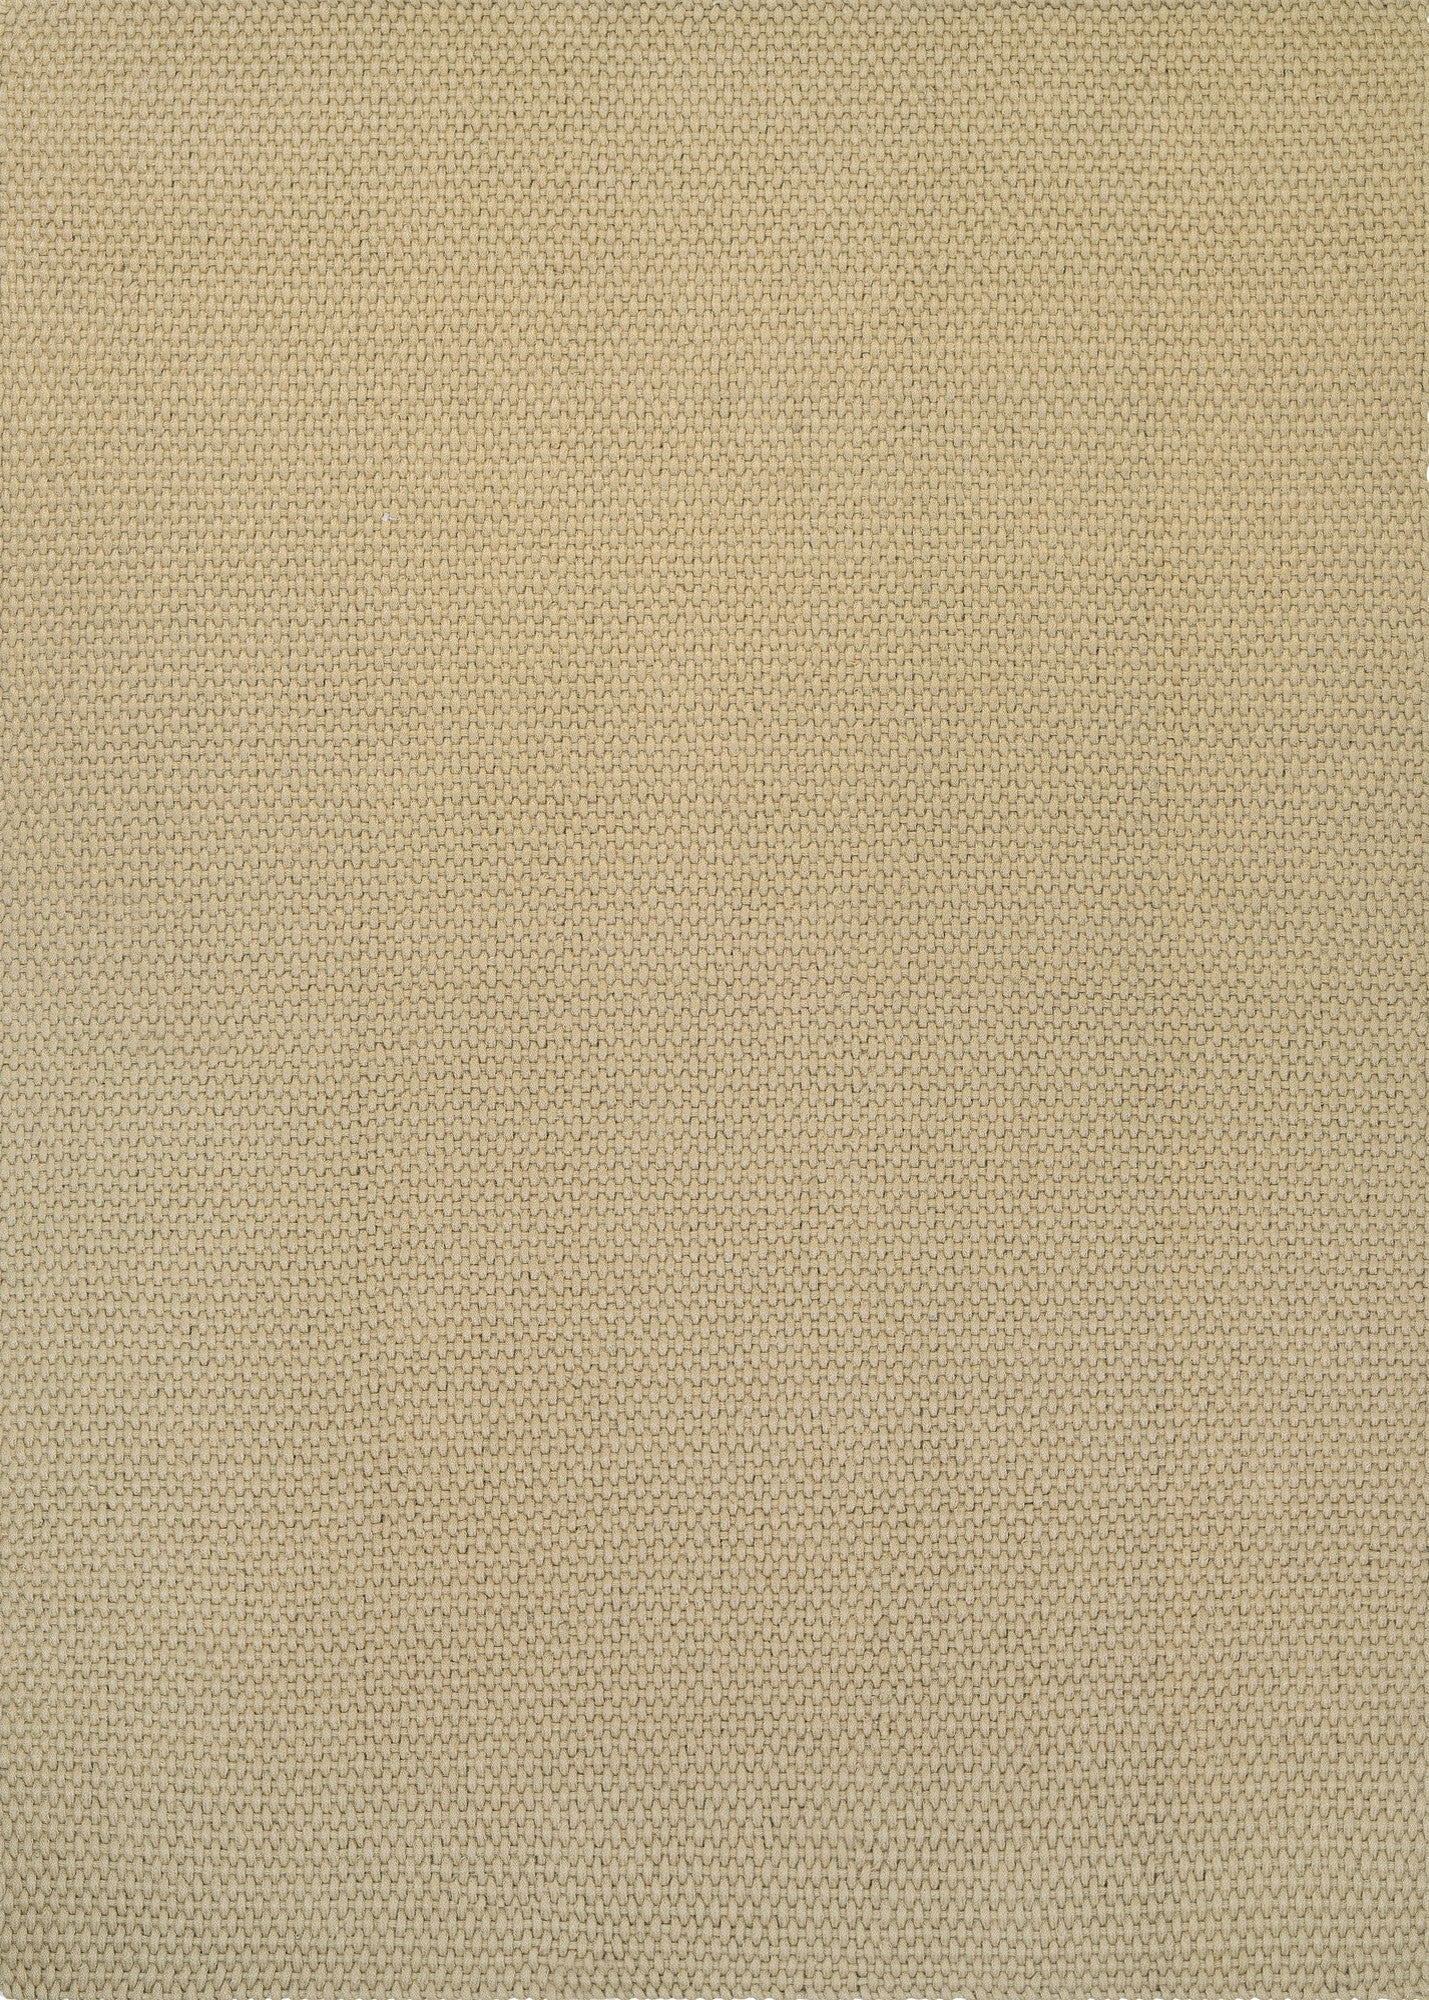 Couristan Nature's Elements Air Oatmeal Area Rug